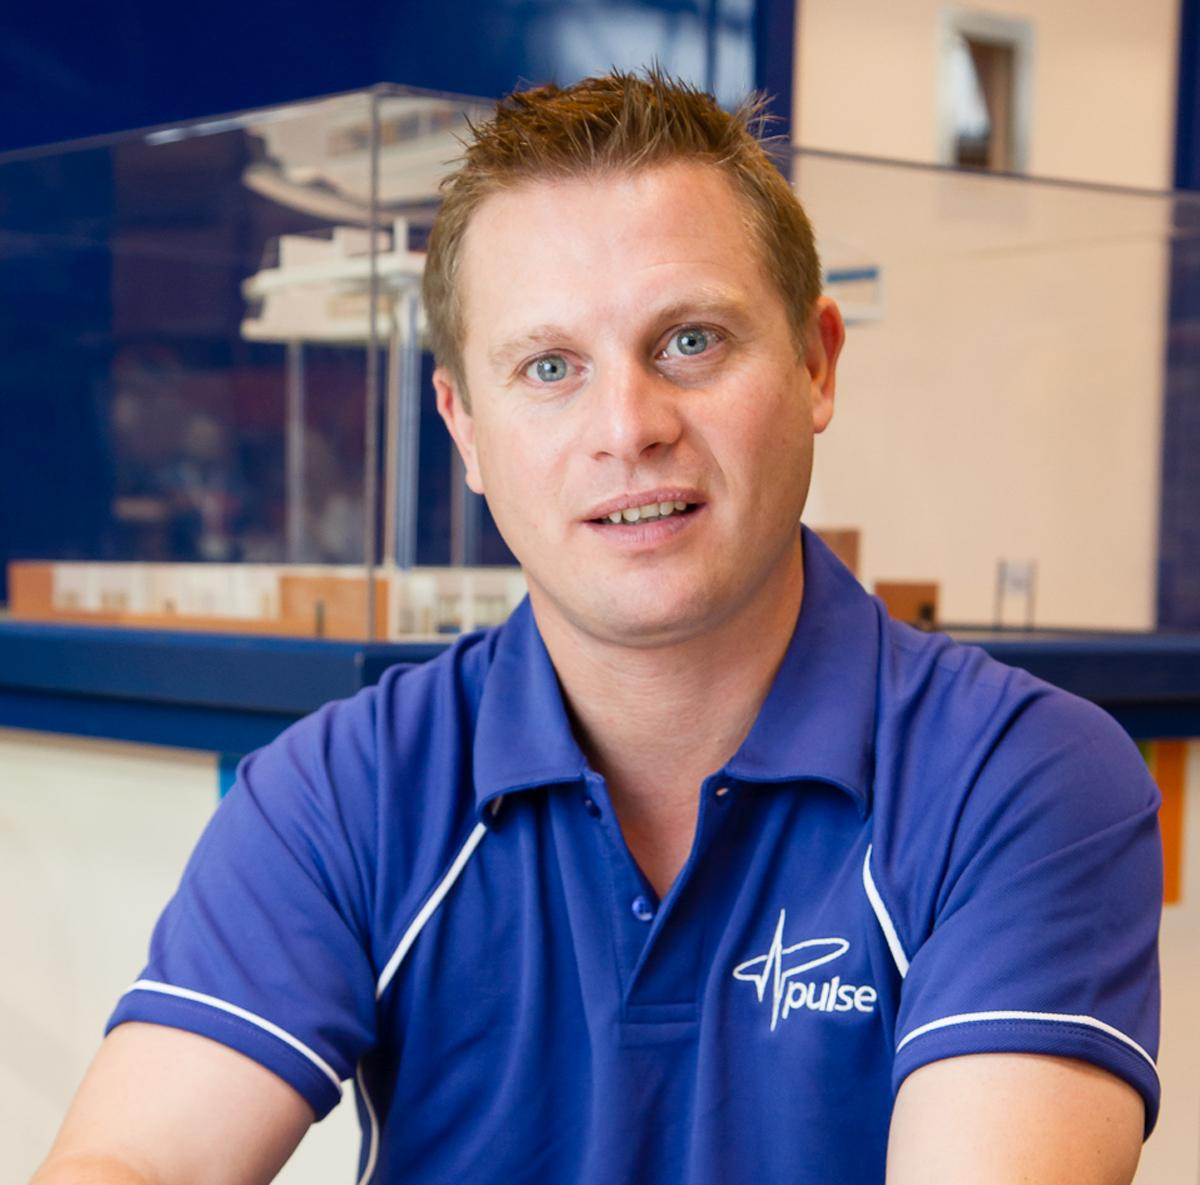 Pulse's Richard Sheen hopes to continue to work with Basingstoke Sports Trust in the future